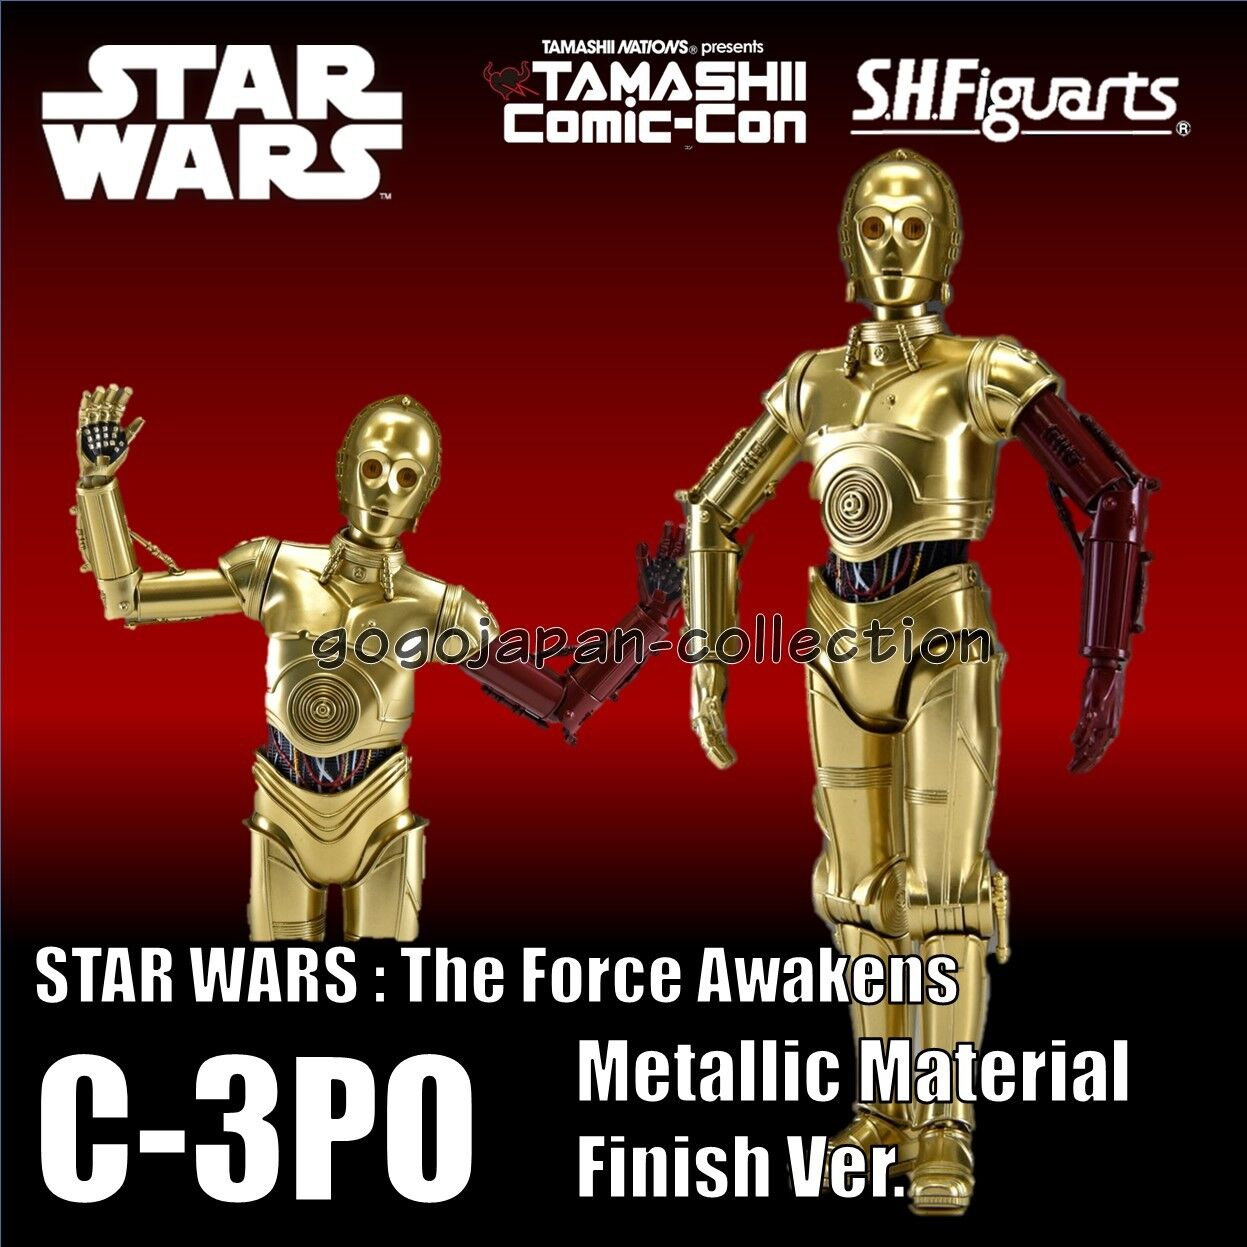 S.H.Figuarts STAR WARS C-3PO Metallic Material Finish ver. Figure LIMITED ITEM